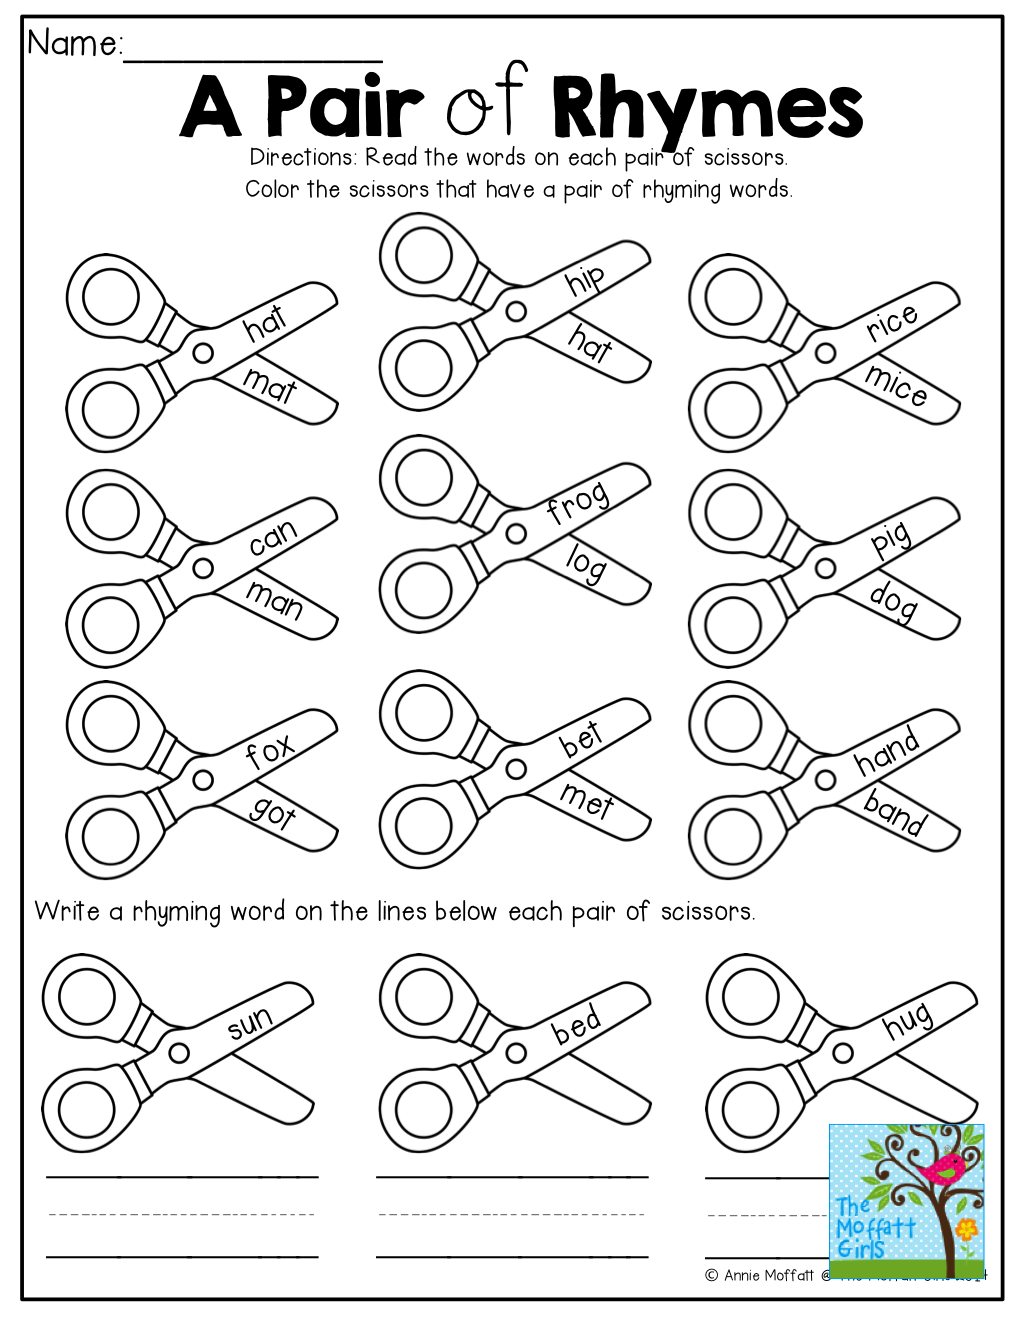 worksheet Words That Rhyme With Work a pair of rhymes color the scissors that have words rhyme tons of